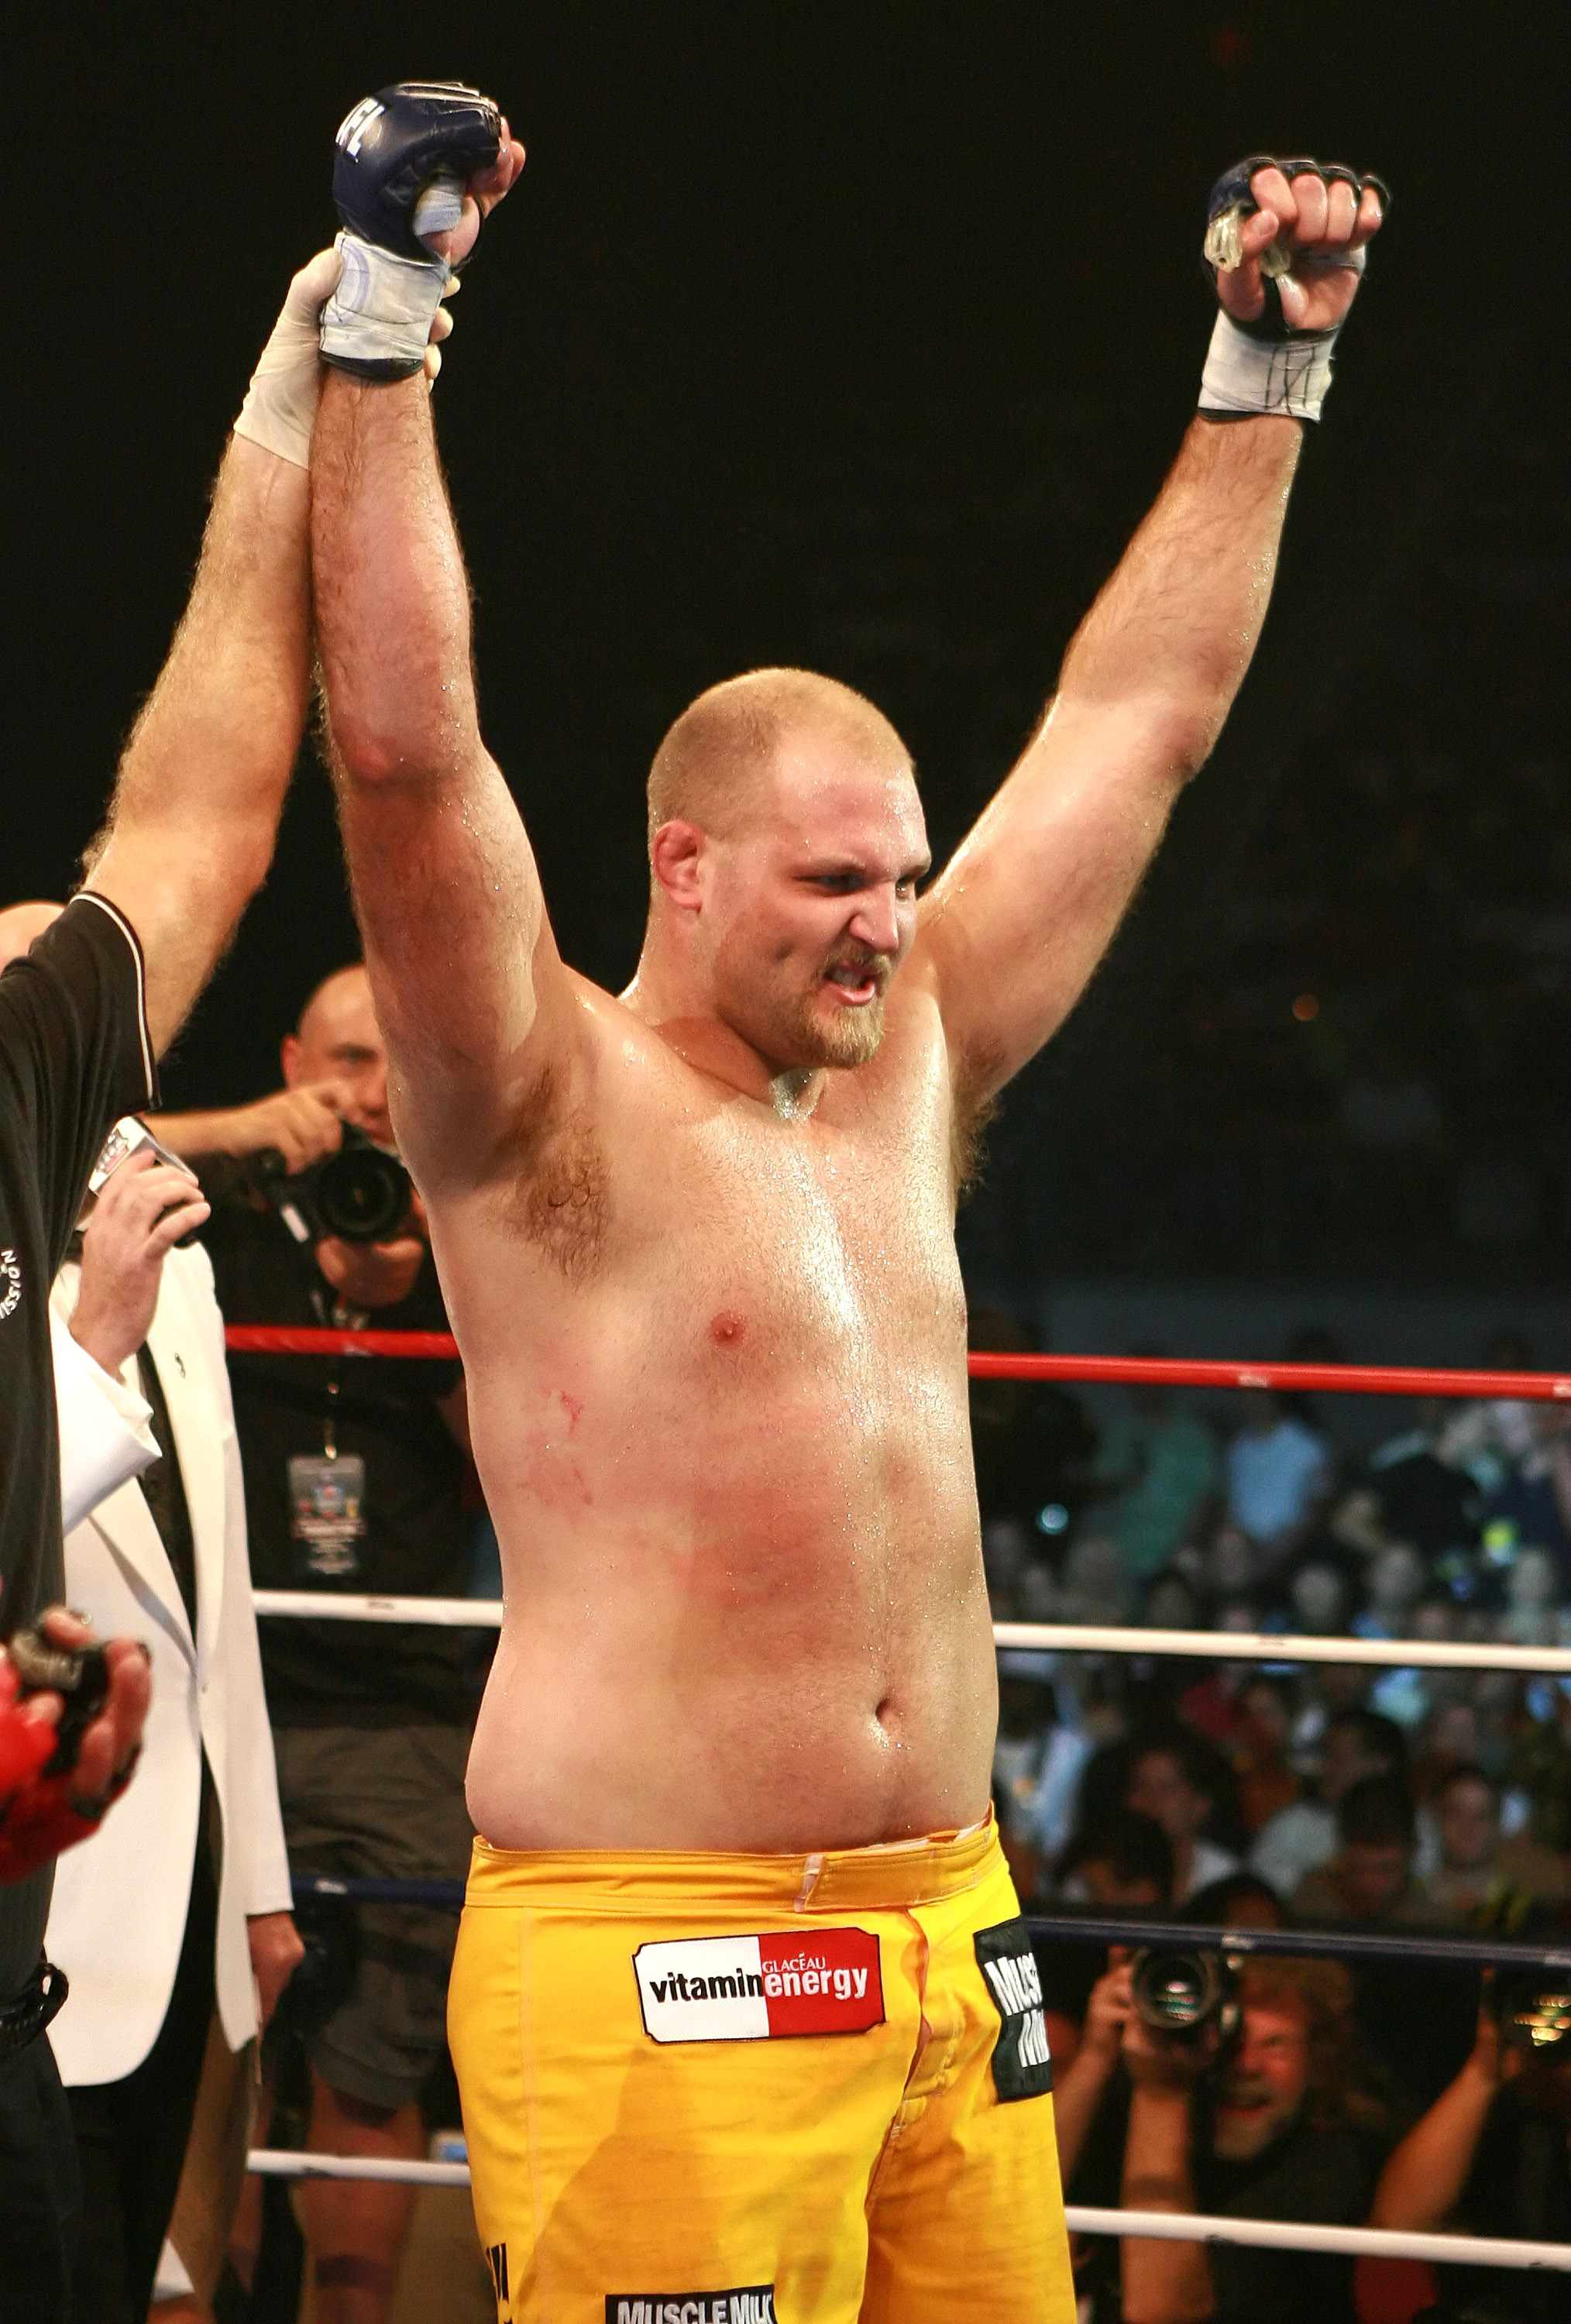 HOLLYWOOD, FL - SEPTEMBER 20:  Ben Rothwell (yellow trunks) celebrates his victory over Ricco Rodriguez during their heavyweight bout during the IFL finals at the Seminole Hard Rock Casino on September 20, 2007 in Hollywood, Florida.  (Photo by Doug Benc/